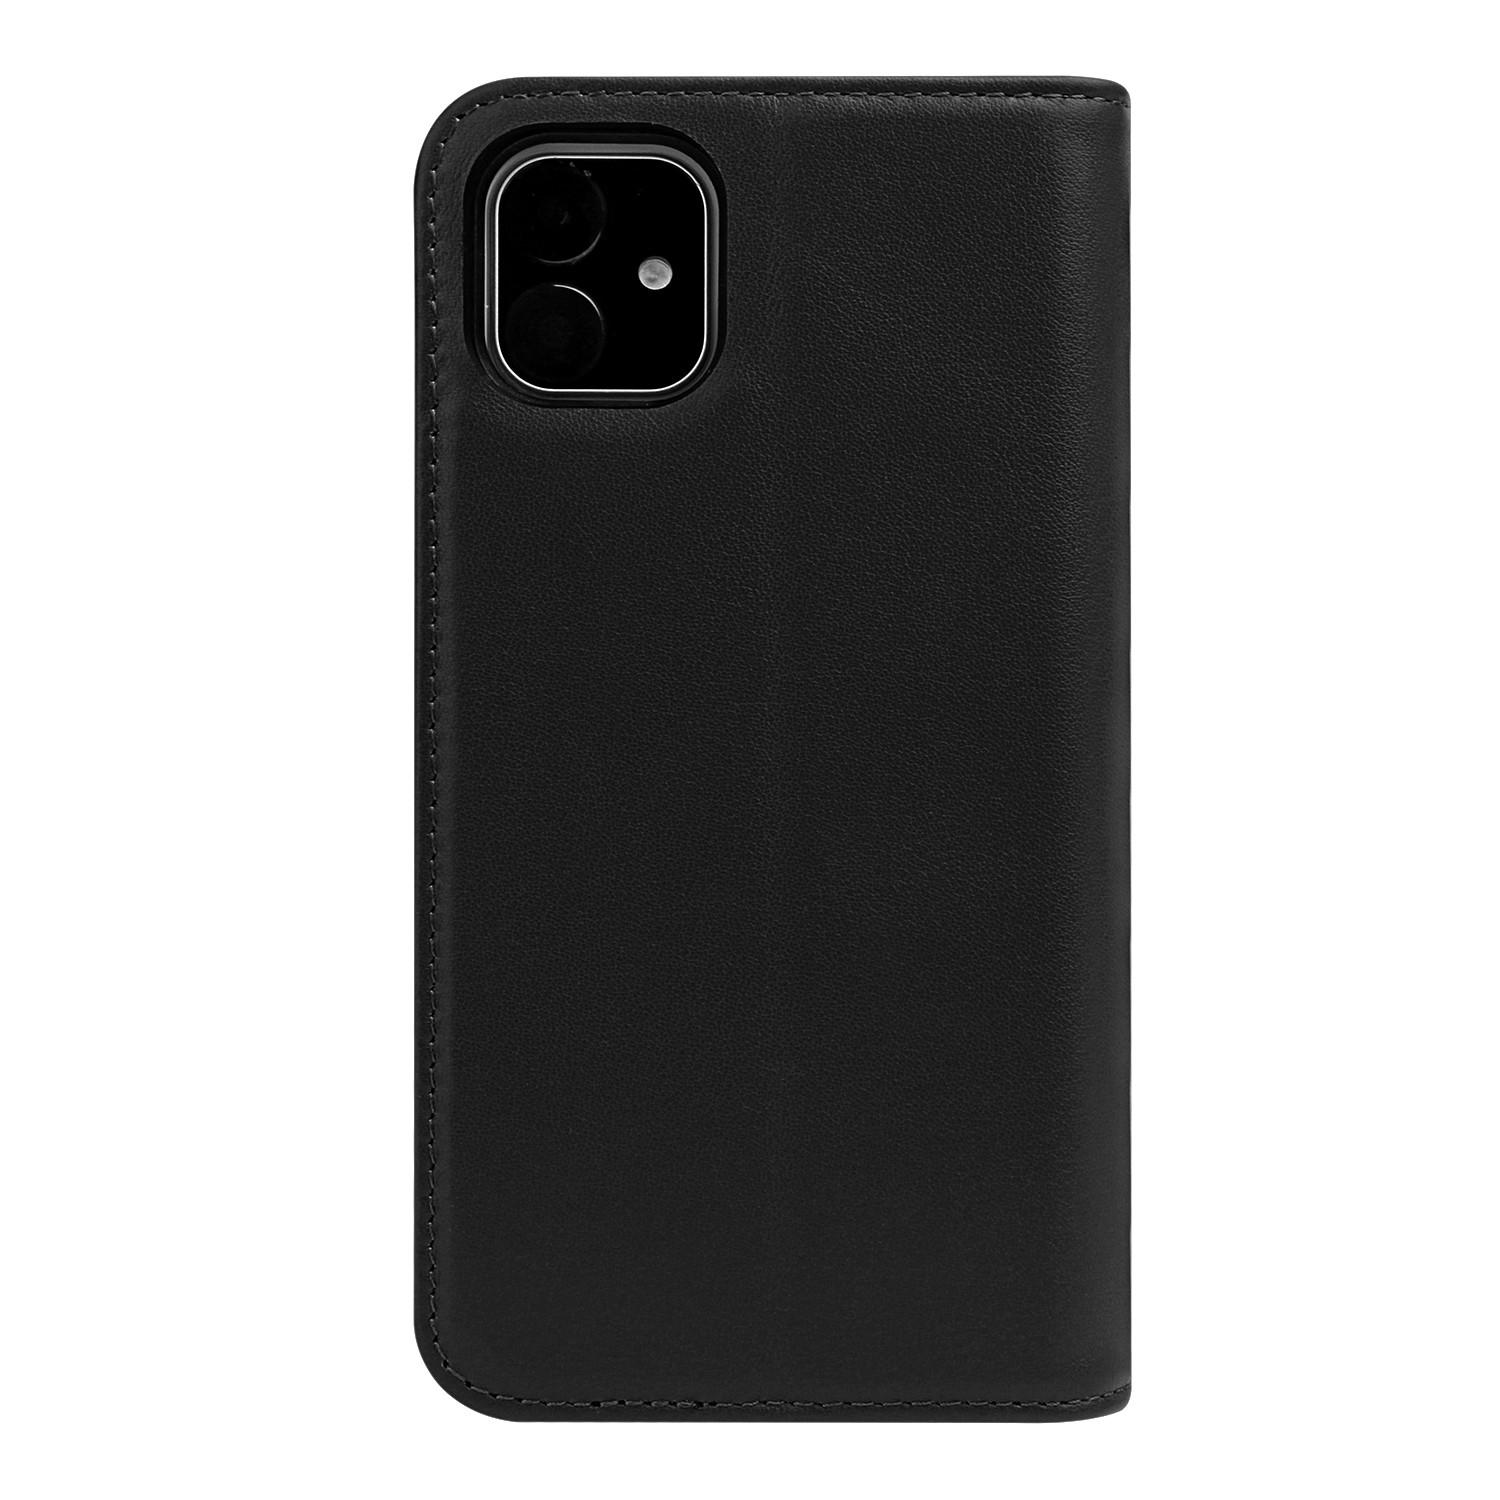 good quality iPhone 11 function on sale for iPhone-2